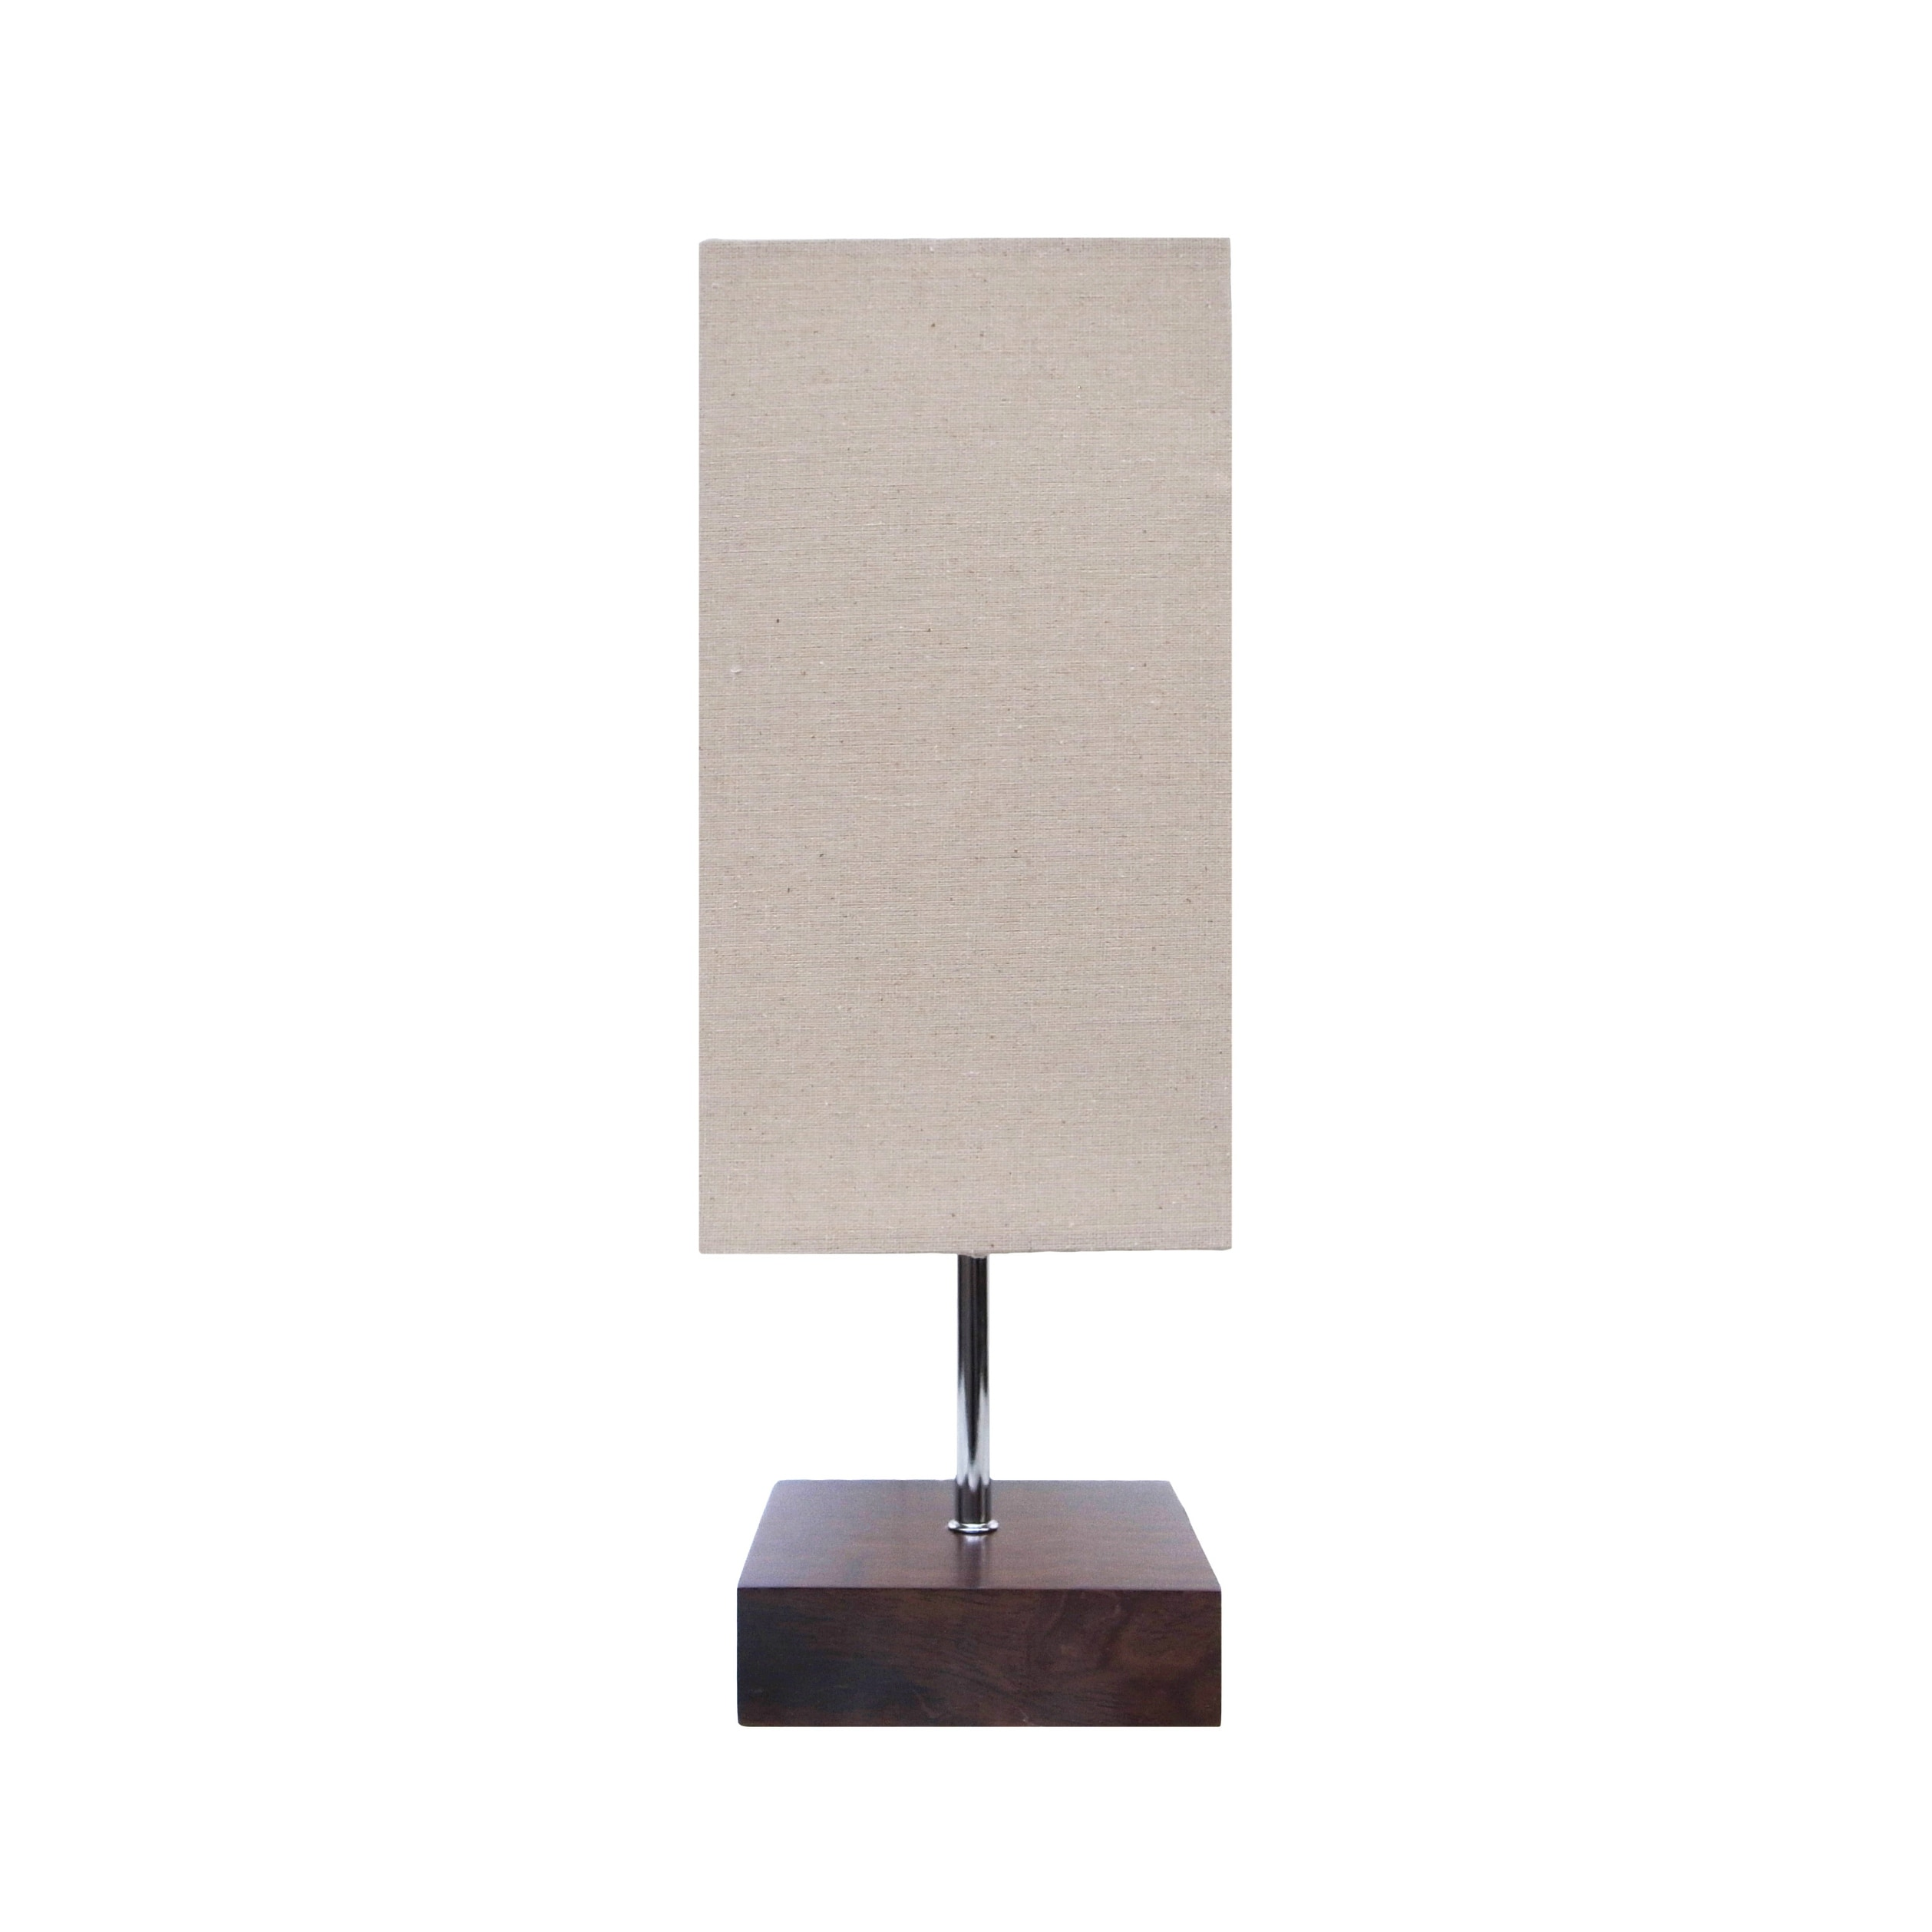 17 Clic Dark Wooden Table Lamp Square